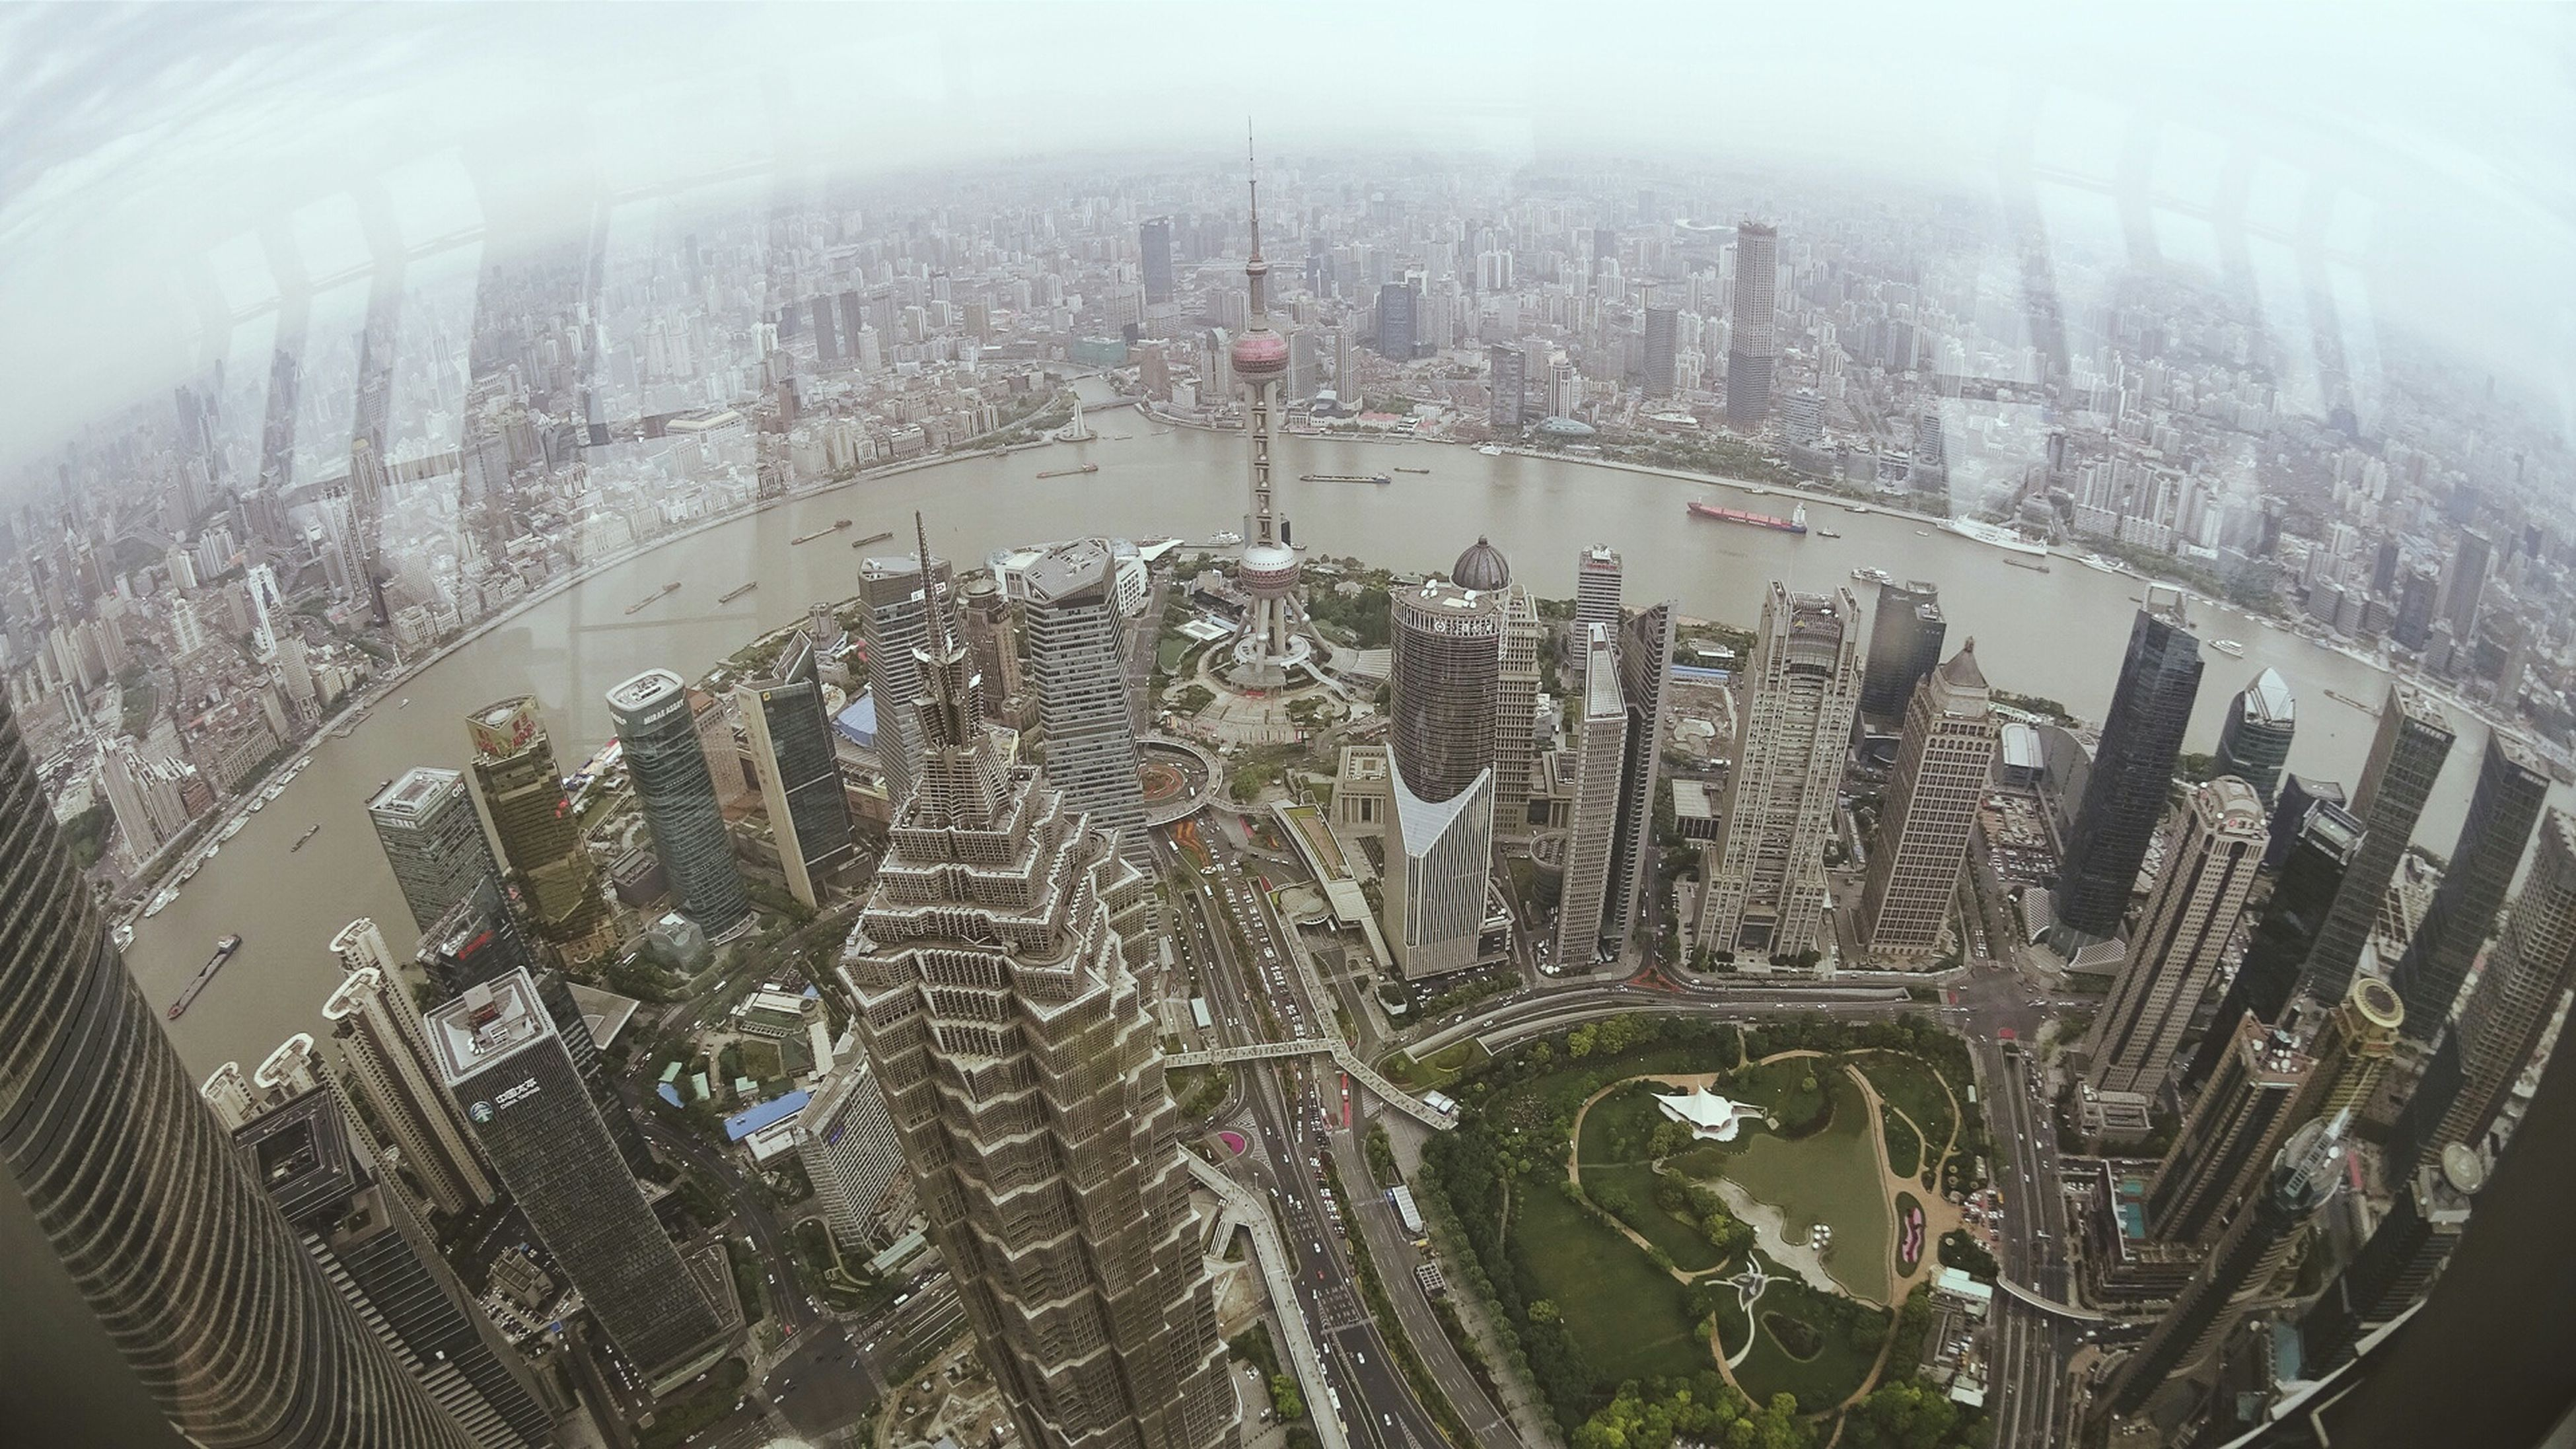 architecture, built structure, city, high angle view, building exterior, cityscape, aerial view, skyscraper, capital cities, famous place, travel destinations, tall - high, travel, ferris wheel, international landmark, water, tower, tourism, modern, transportation